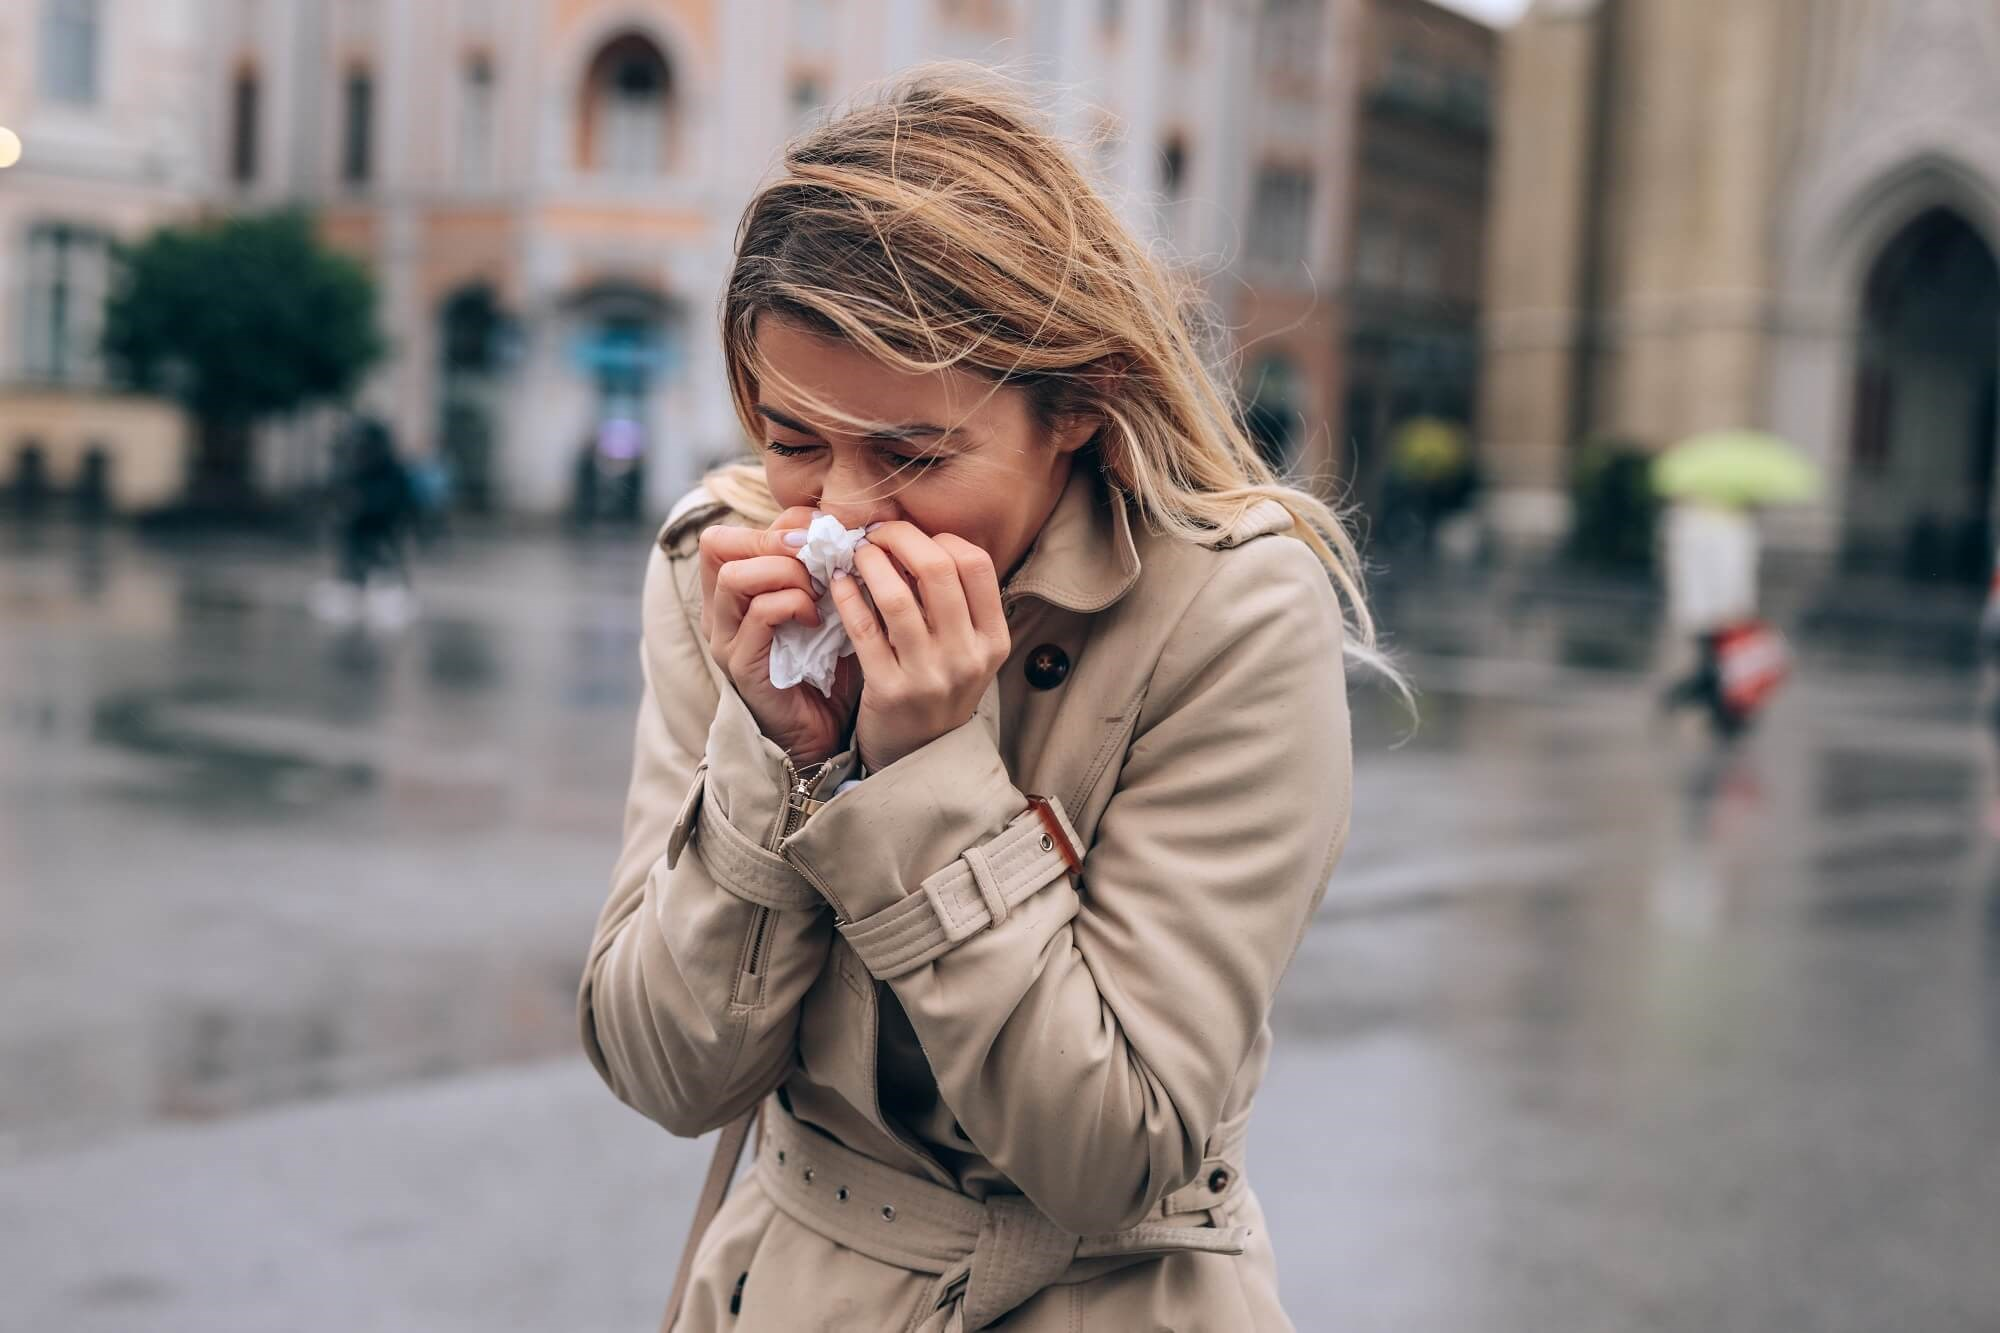 Rhinitis Nearly Ubiquitous in Urban Adolescents With Asthma